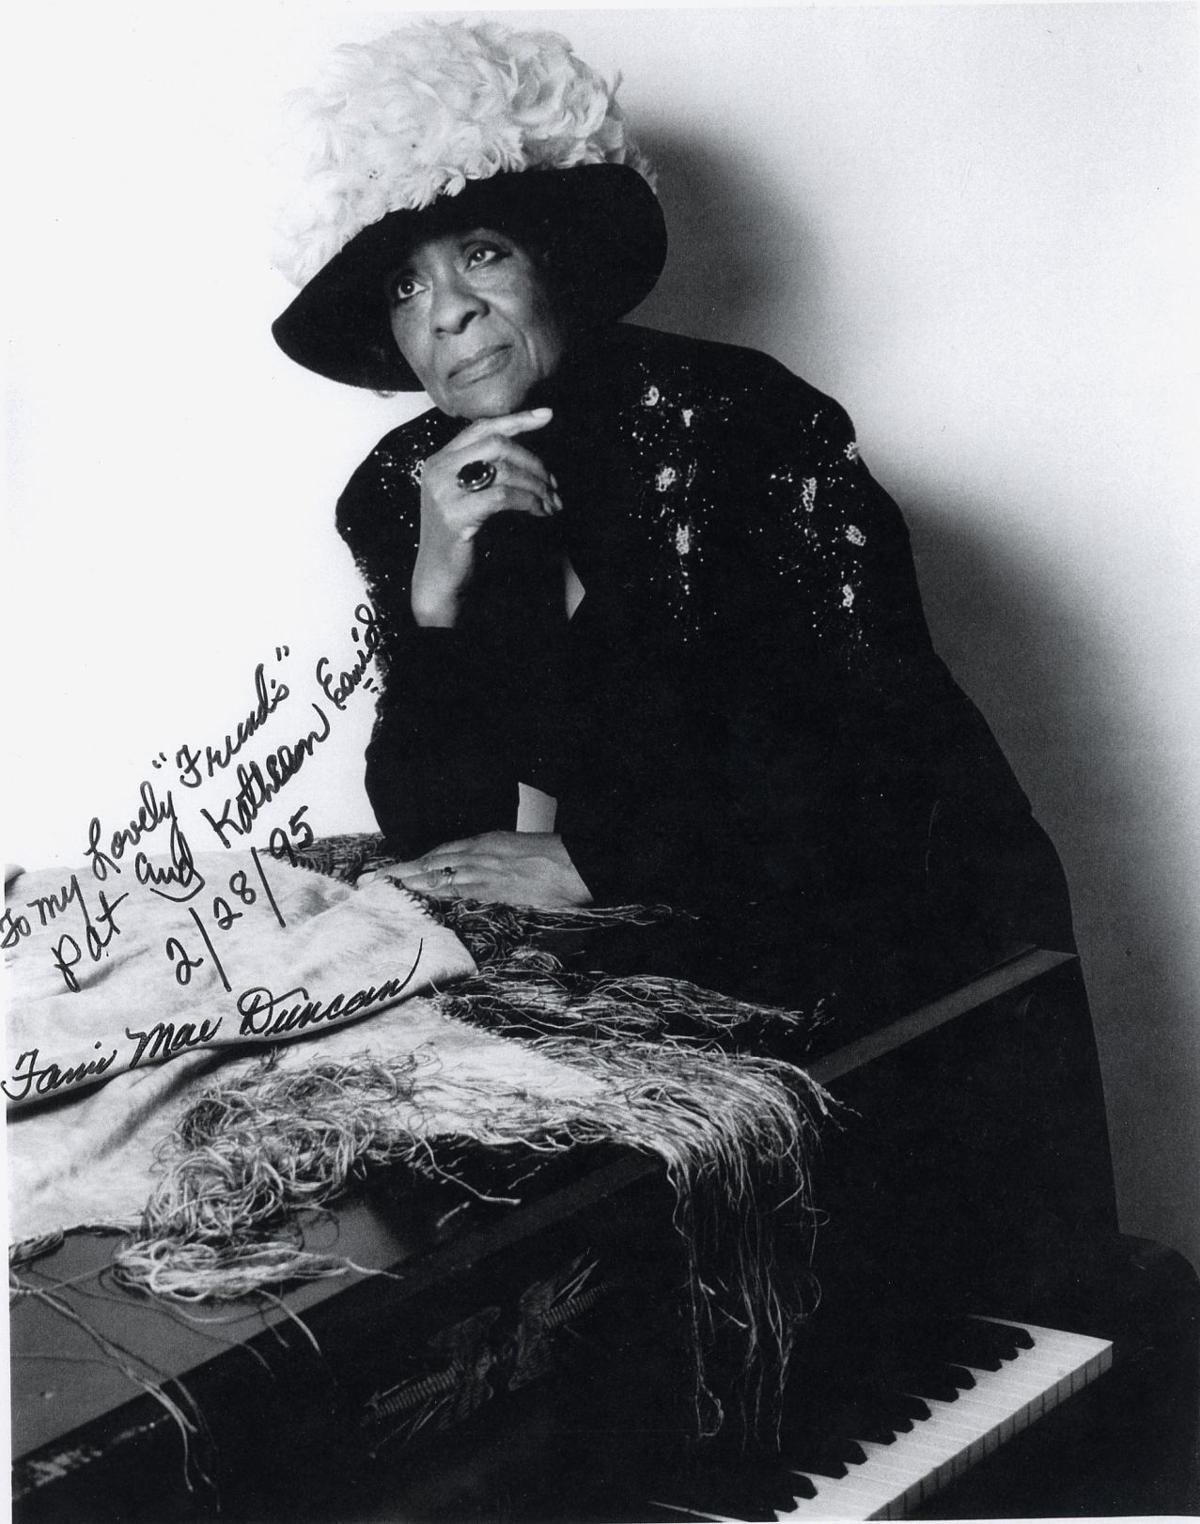 fannie mae duncan in1995 courtesy kathleen esmiol.jpg